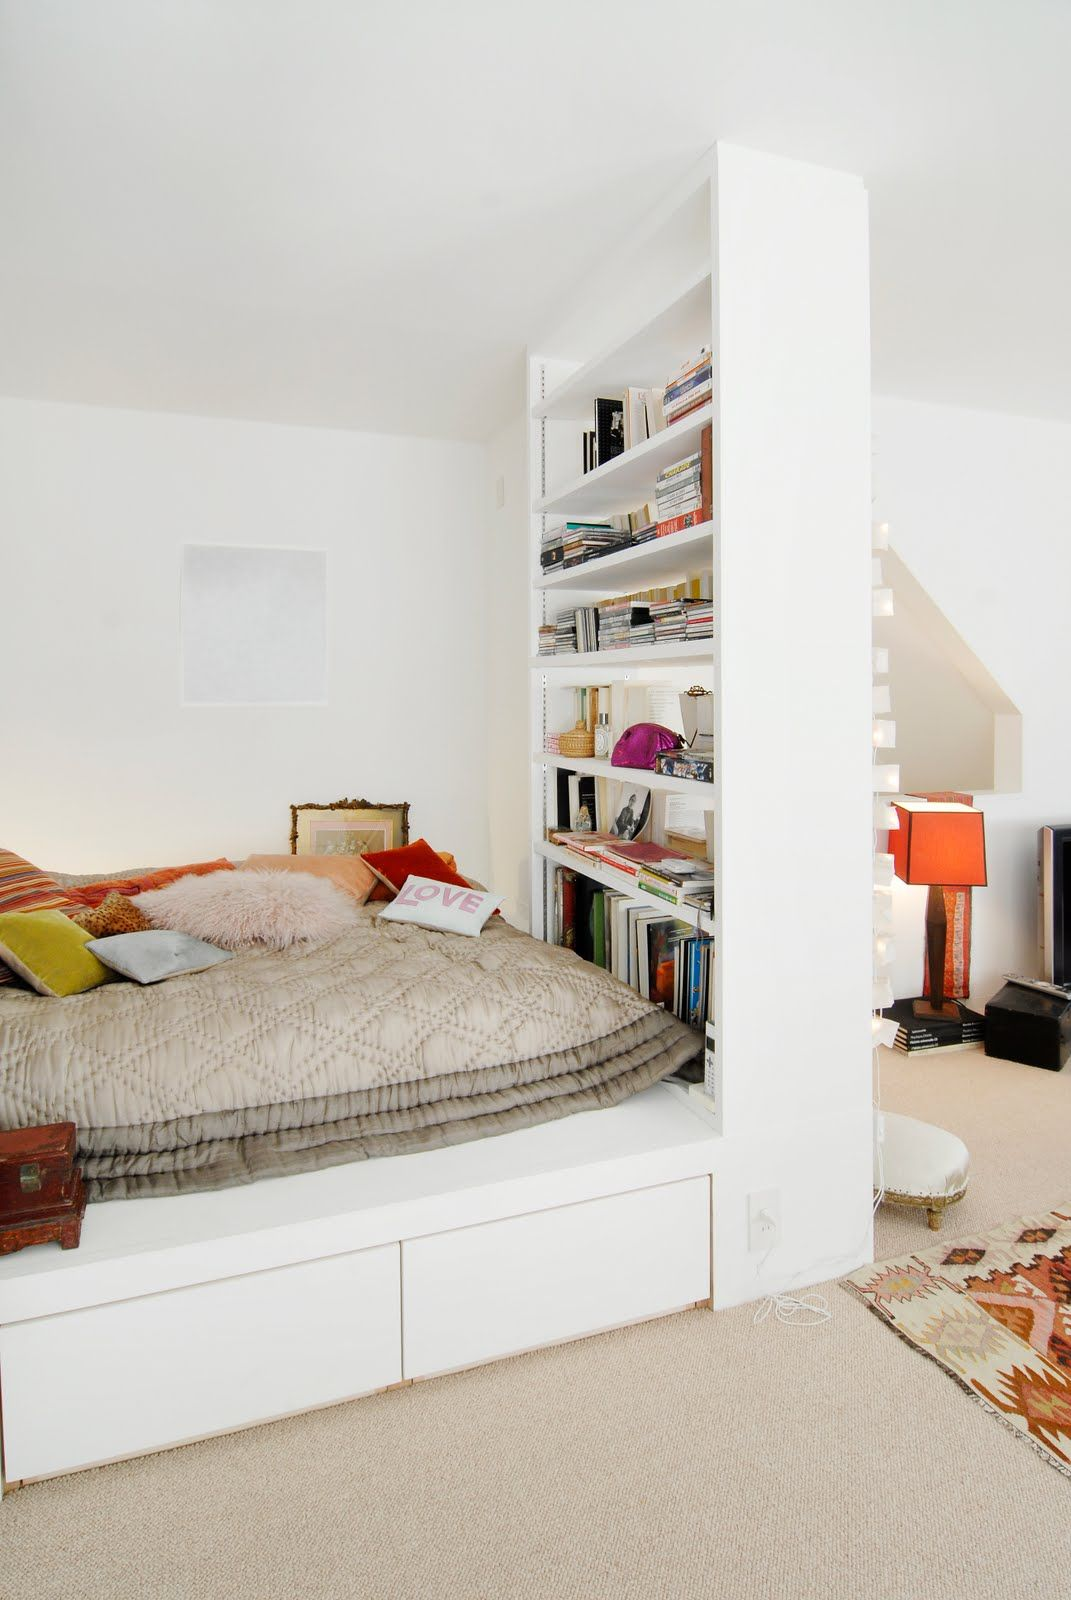 Basement bedroom with open dividing wall dream home pinterest